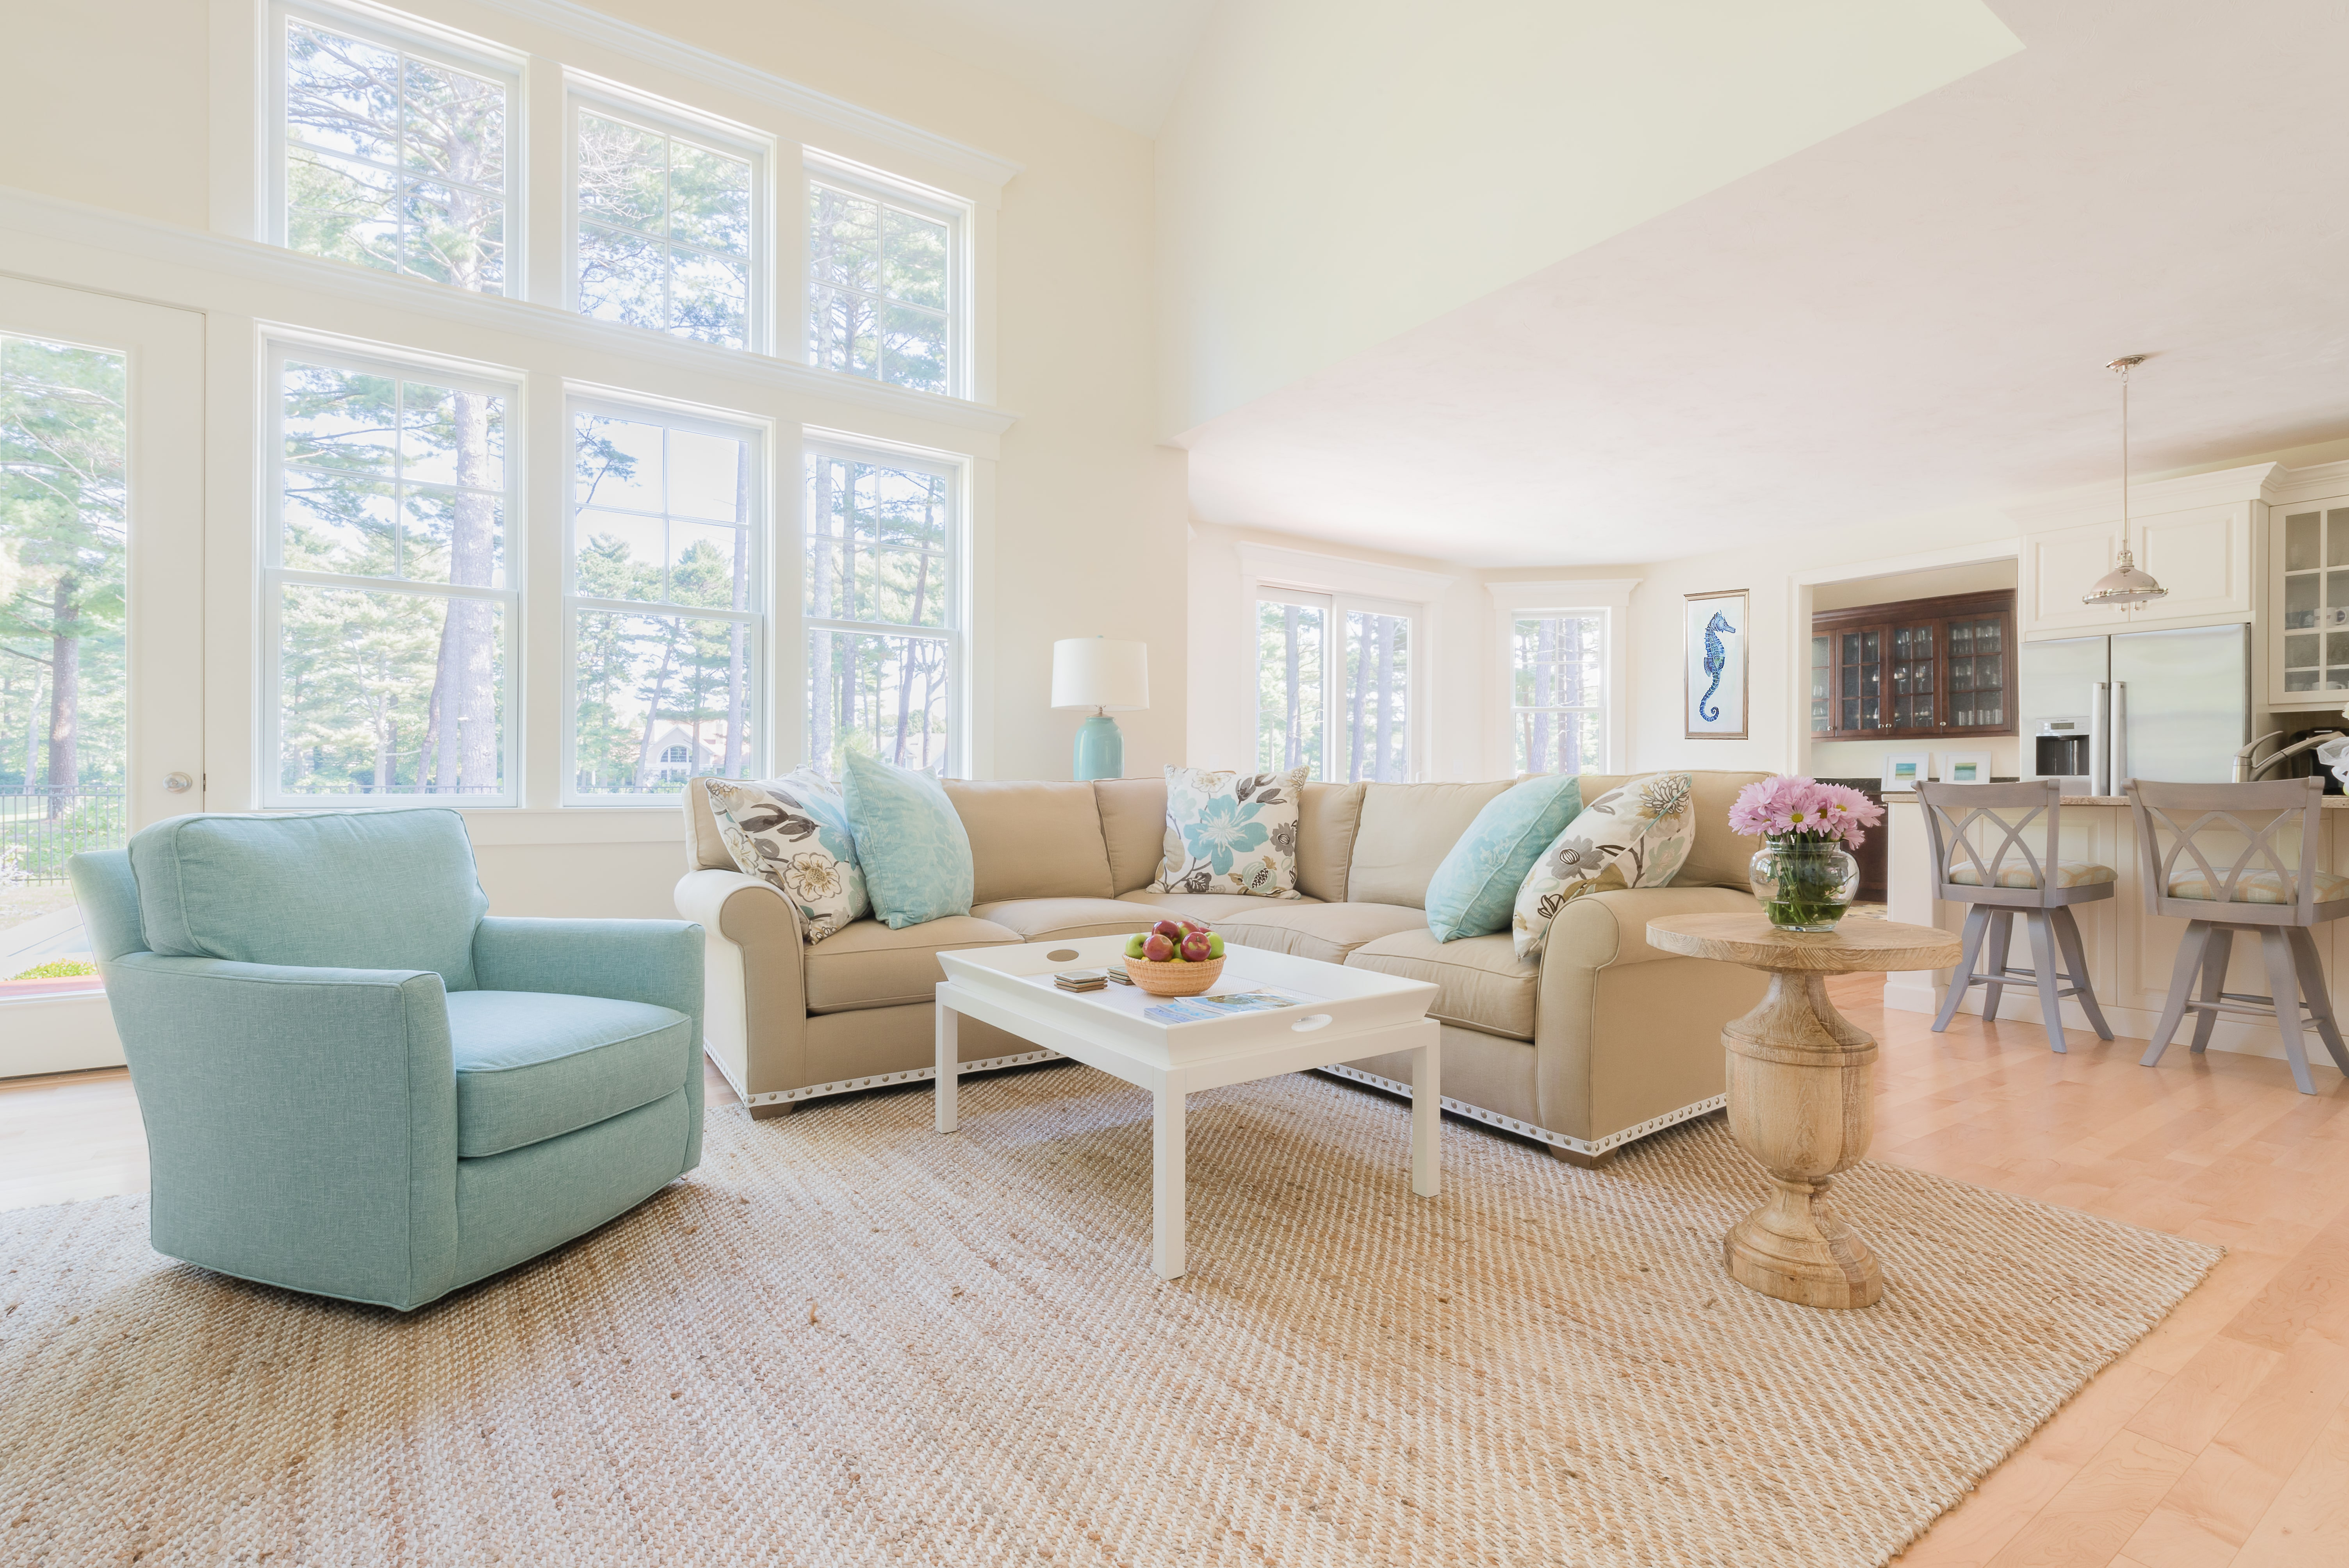 Circle Furniture - How to Expertly Decorate an Open Floor Plan